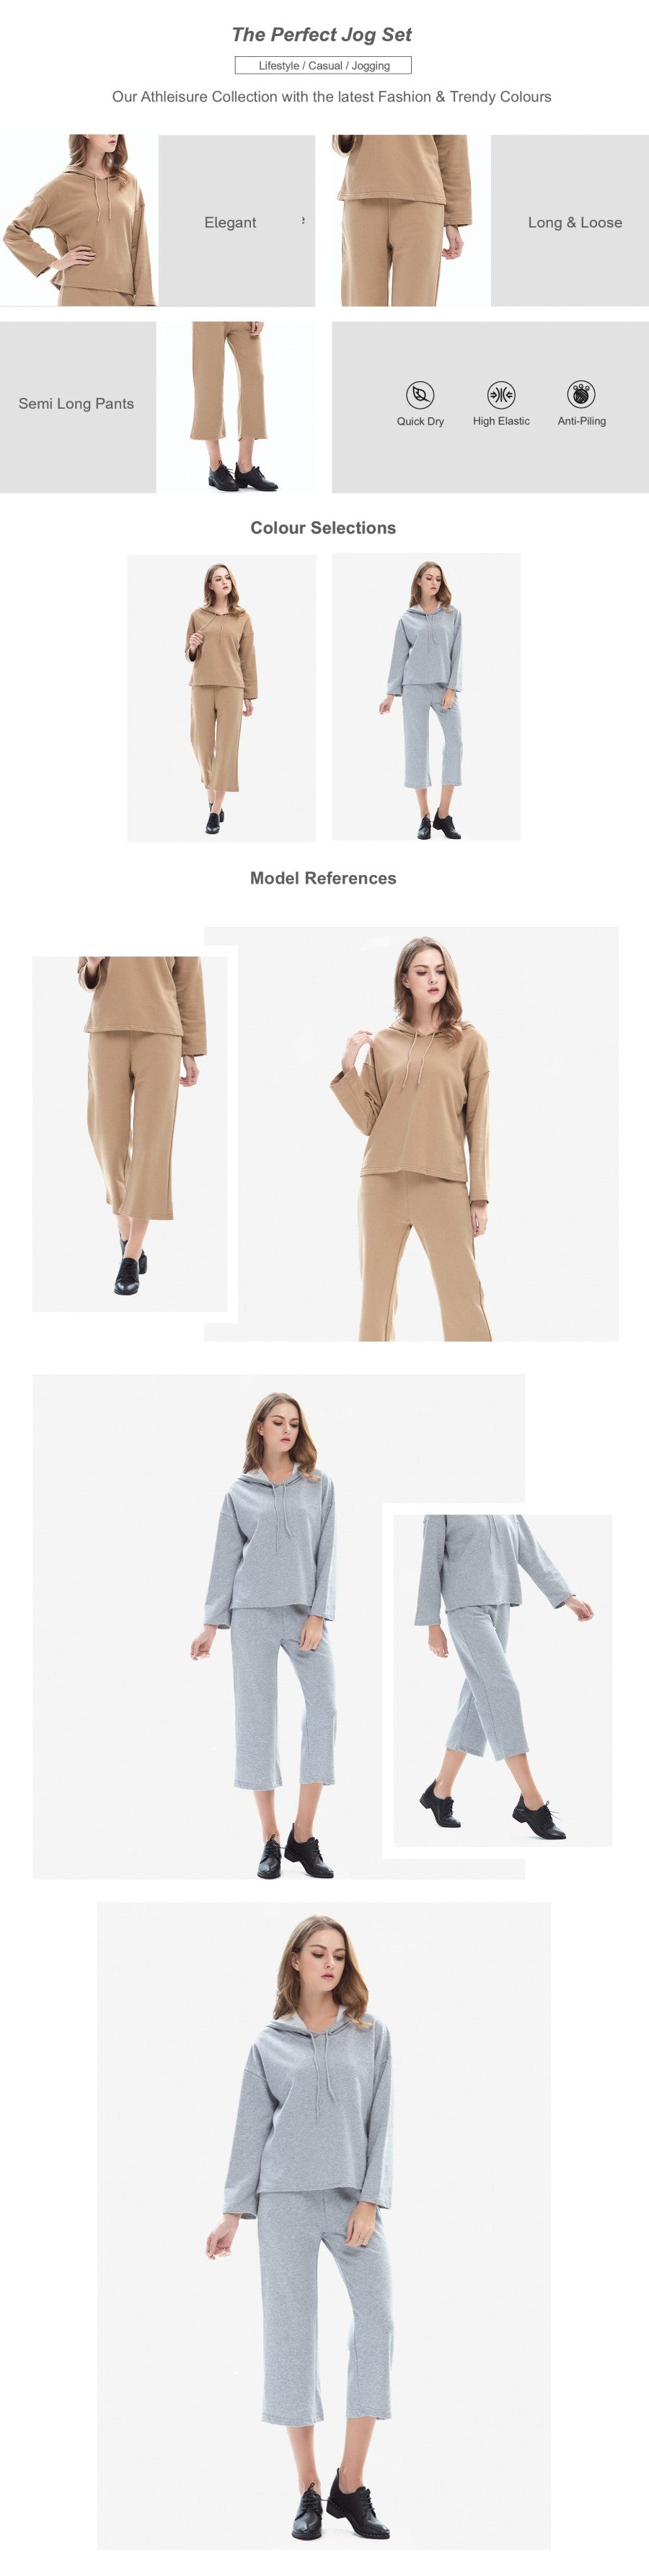 Hooded Top with Capri Joggers Set